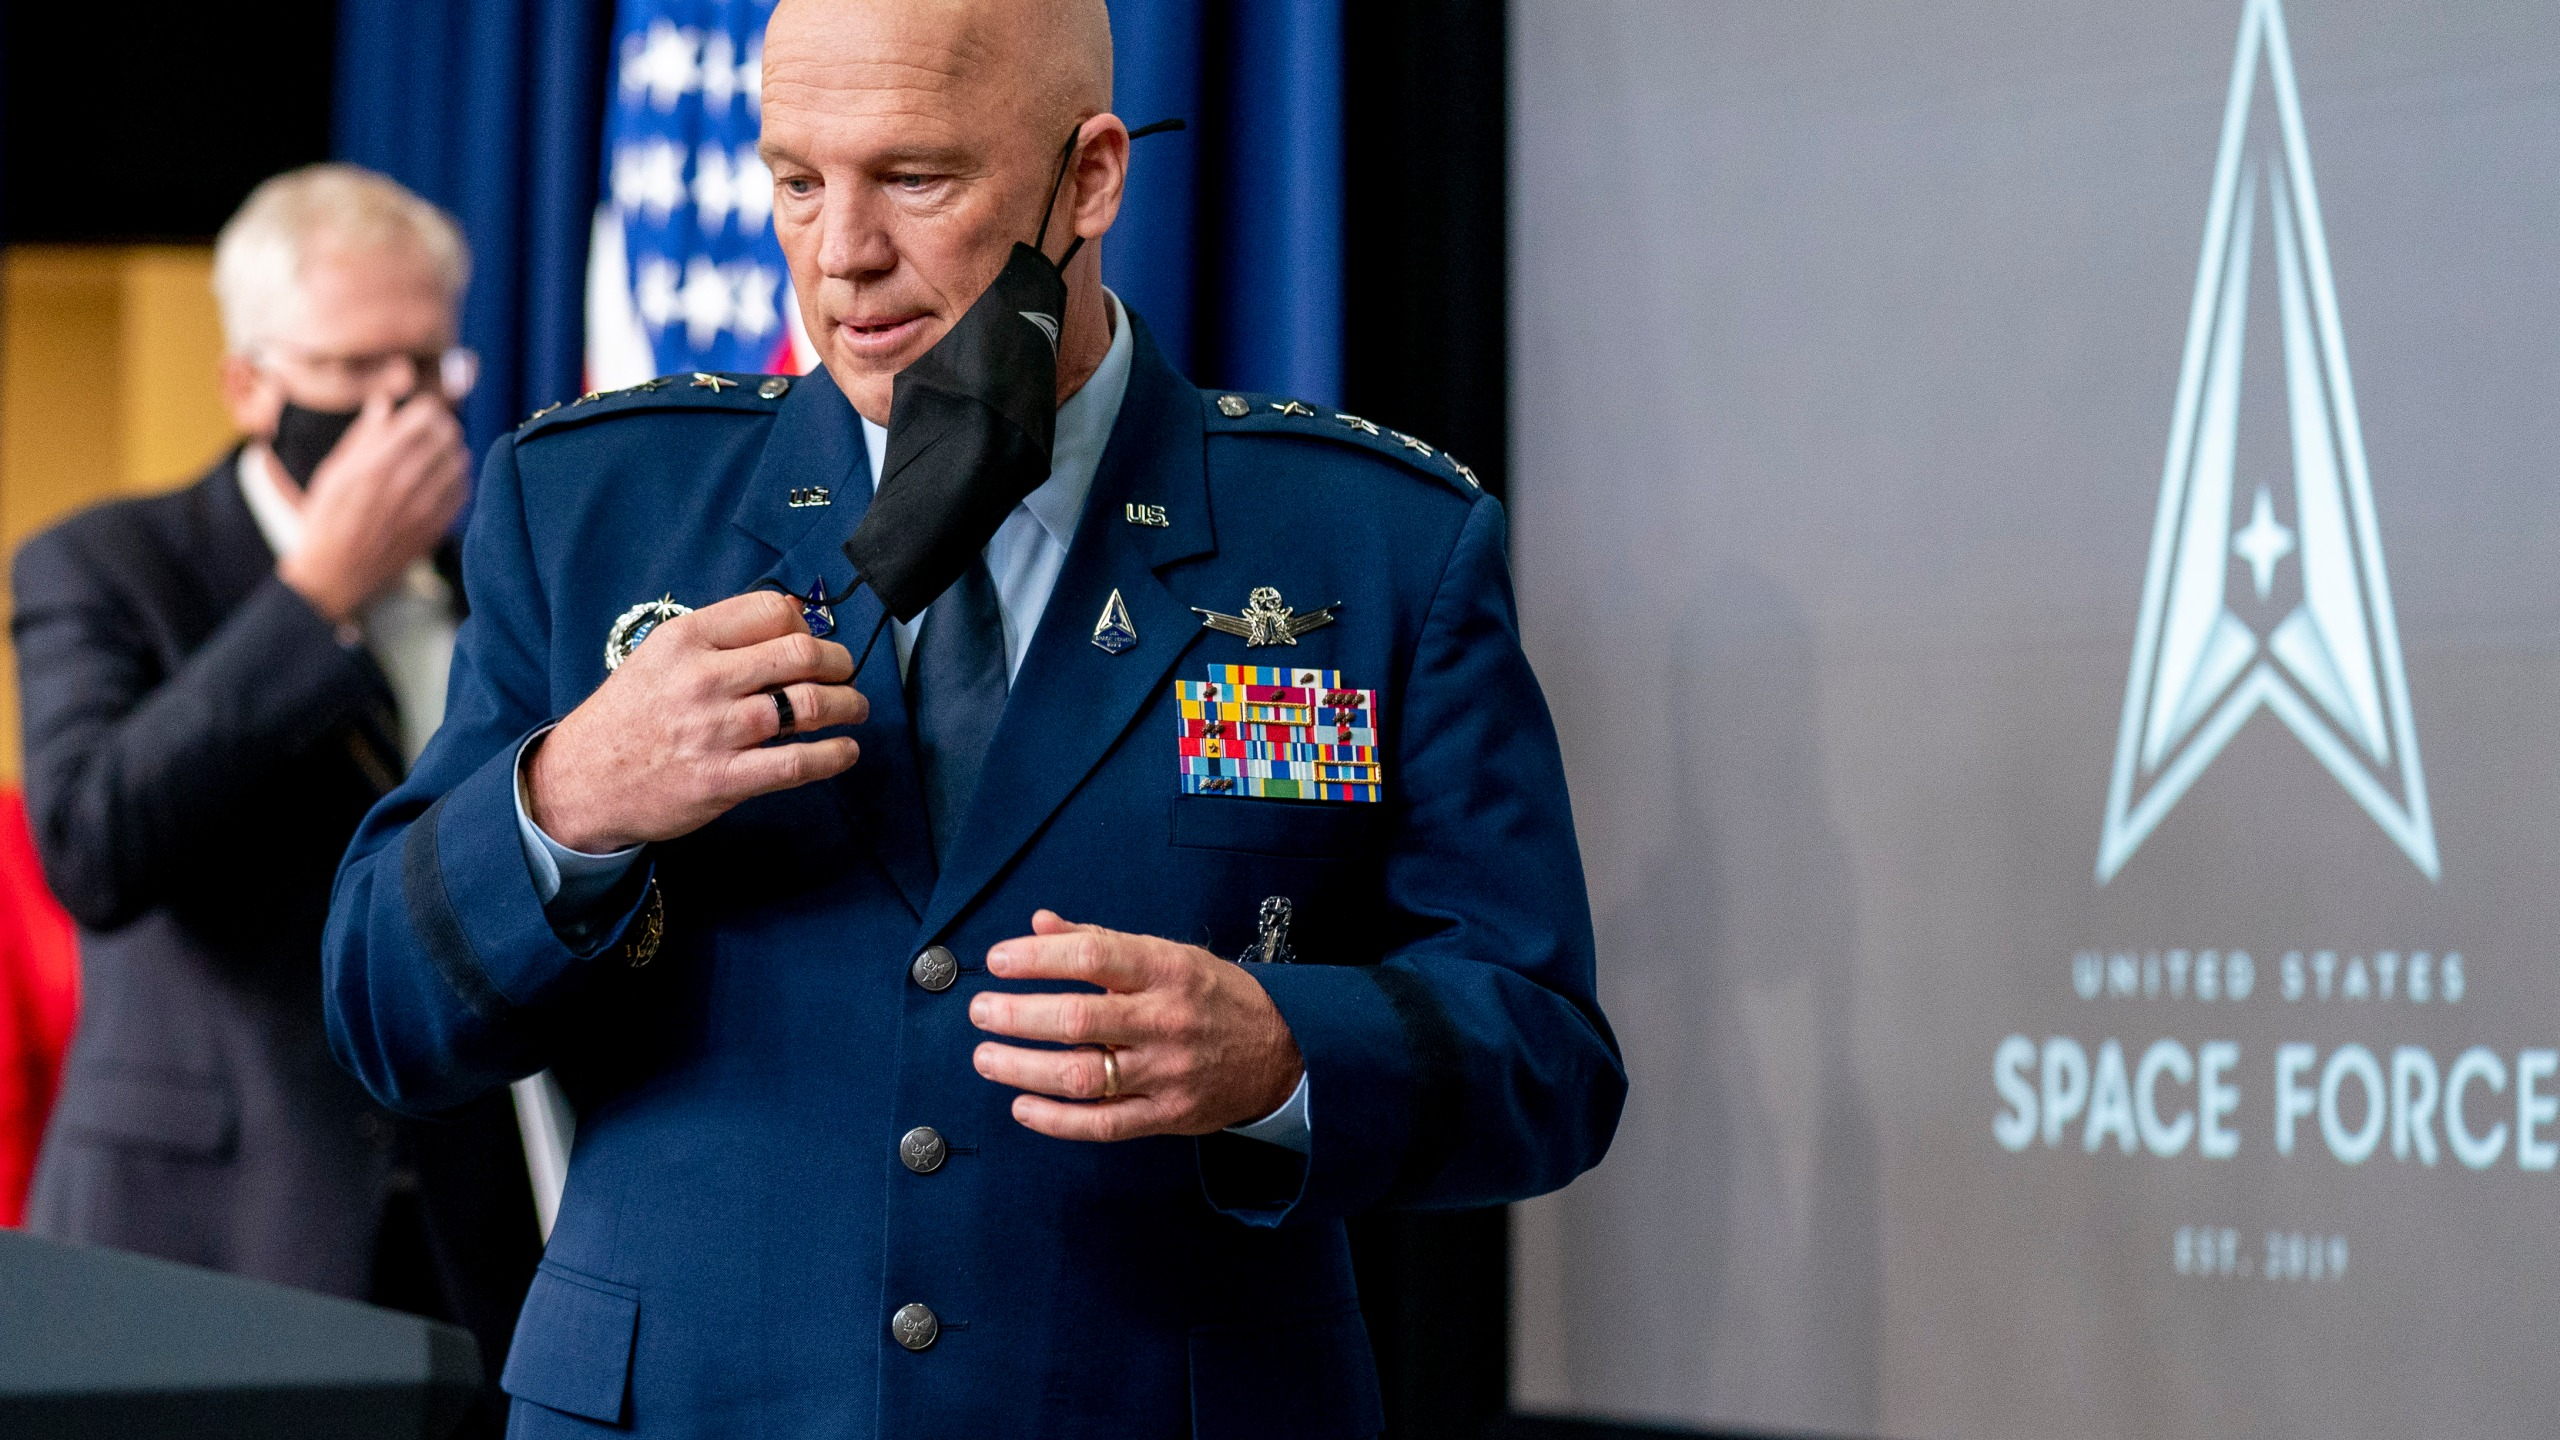 Chief of Space Operations at U.S. Space Force Gen. John Raymond takes the podium to speak at a ceremony to commemorate the first birthday of the U.S. Space Force at the Eisenhower Executive Office Building on the White House complex, Friday, Dec. 18, 2020, in Washington. (AP Photo/Andrew Harnik)